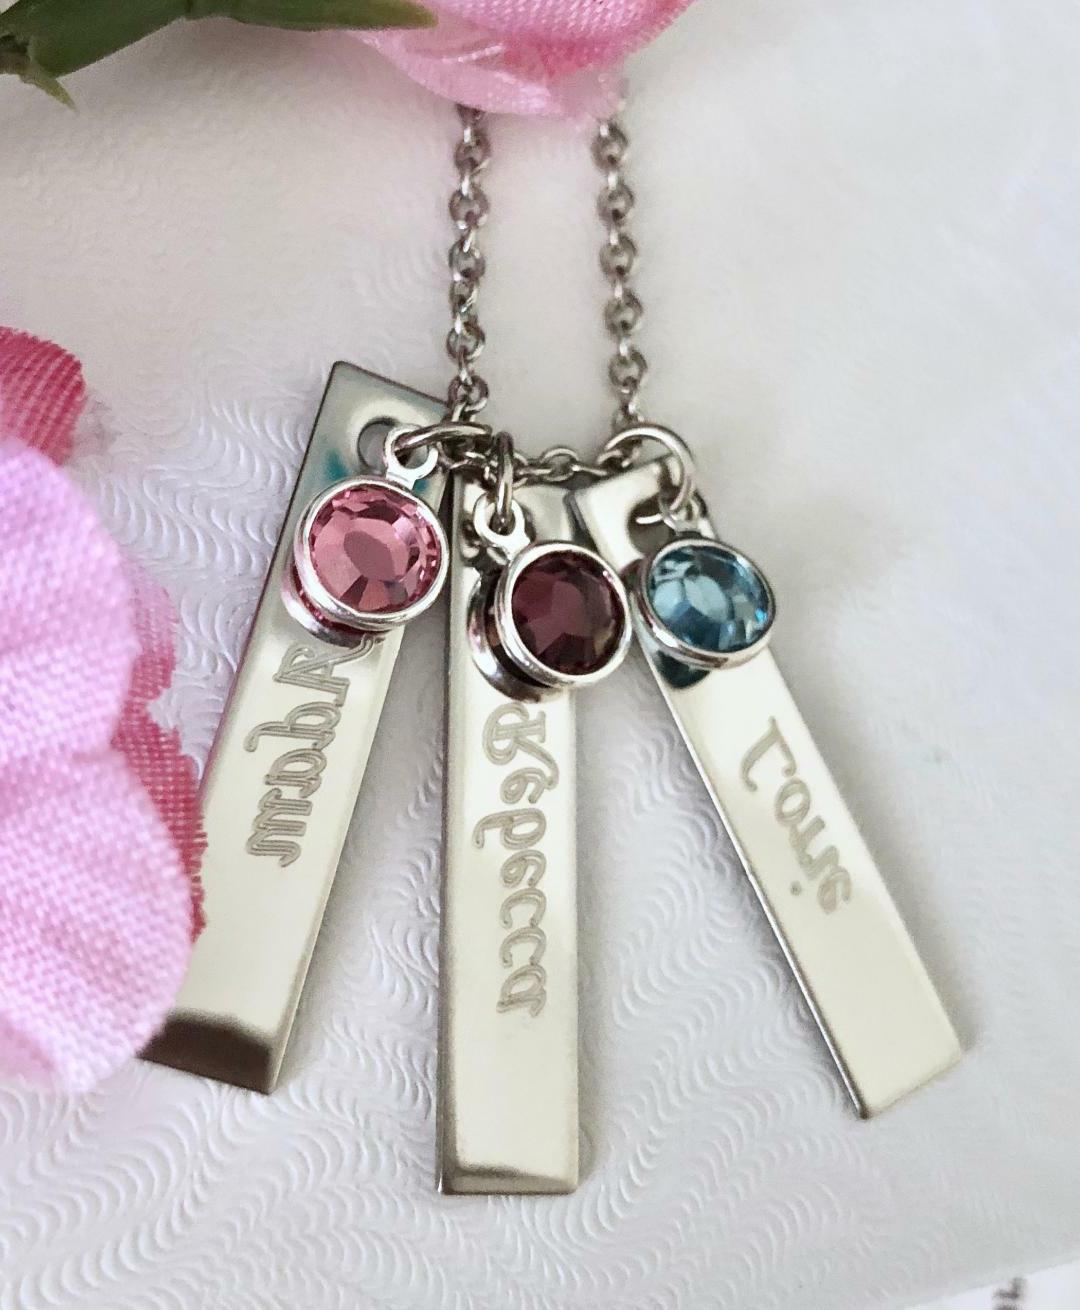 Personalized name/stone Stainless steel Name Bar Necklace Ve